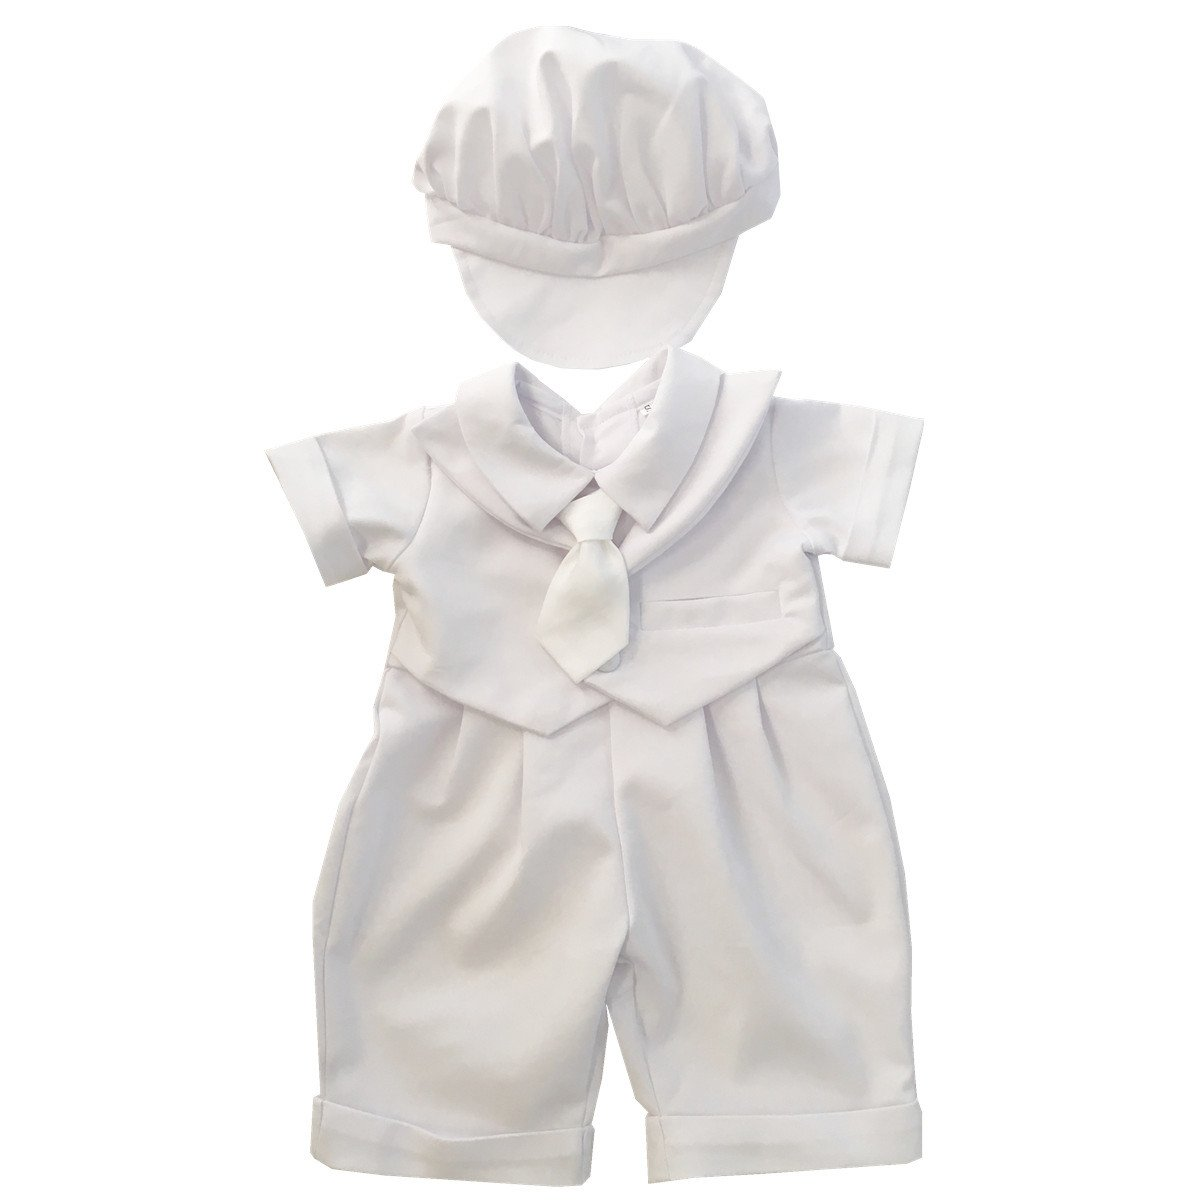 BBVESTIDO Baby Boy Baptism Christening Outfits 100% Cotton Romper with Necktie for 0-2T White